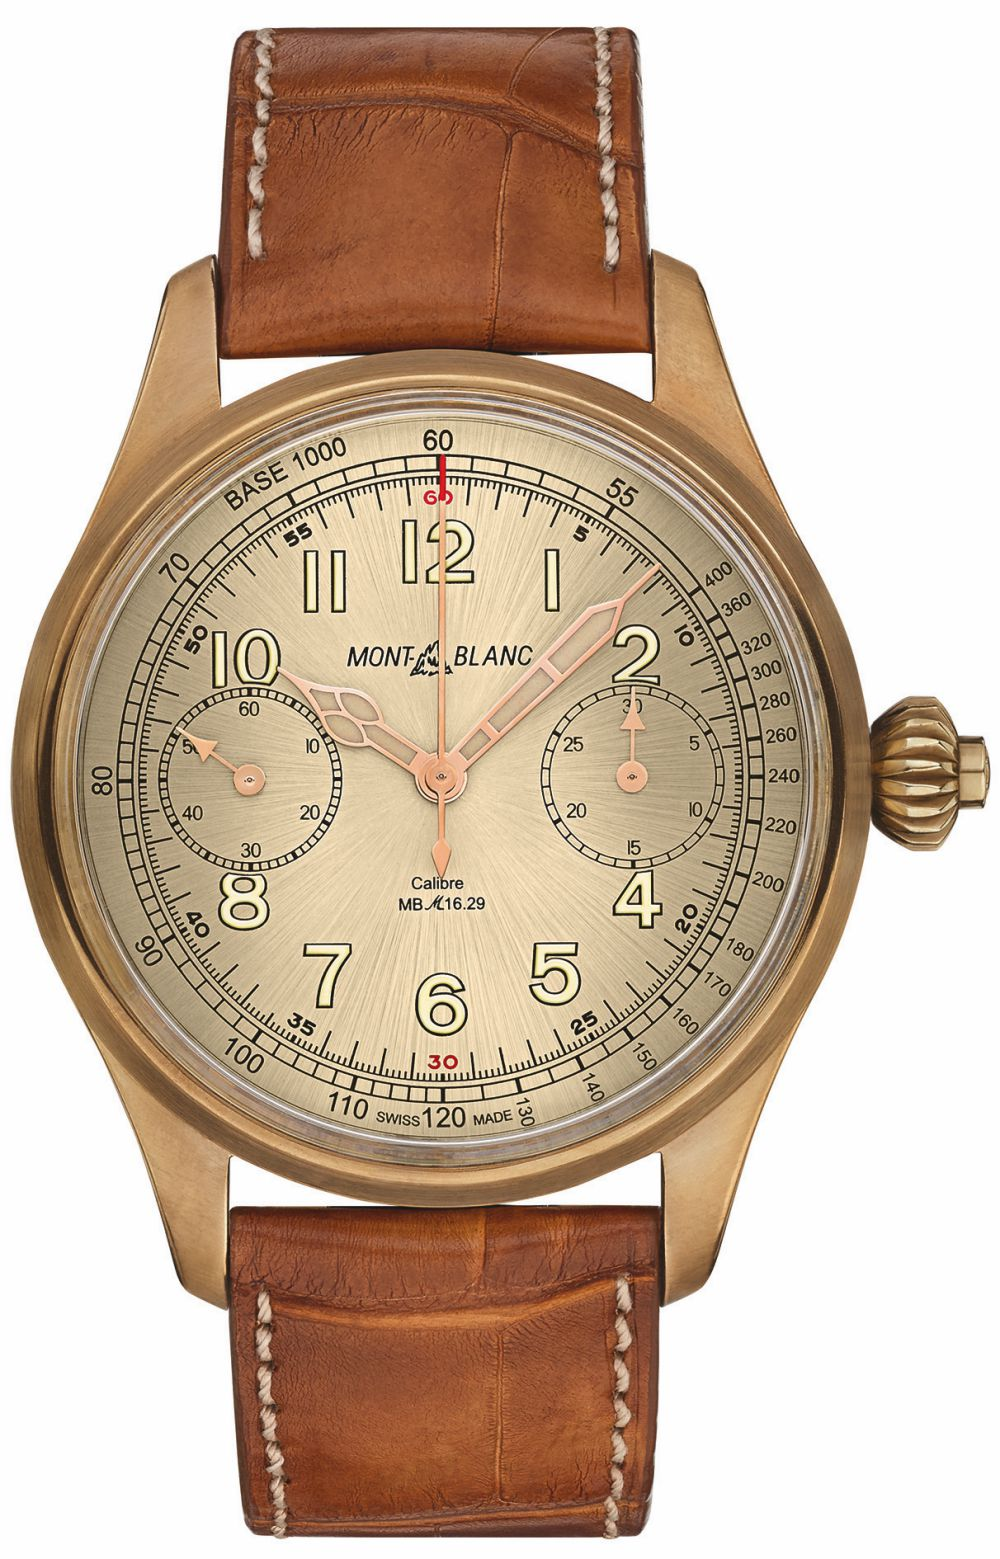 Montblanc-1858-Chronograph-Tachymeter-Limited-Edition-100-LE100_116243-1.jpg